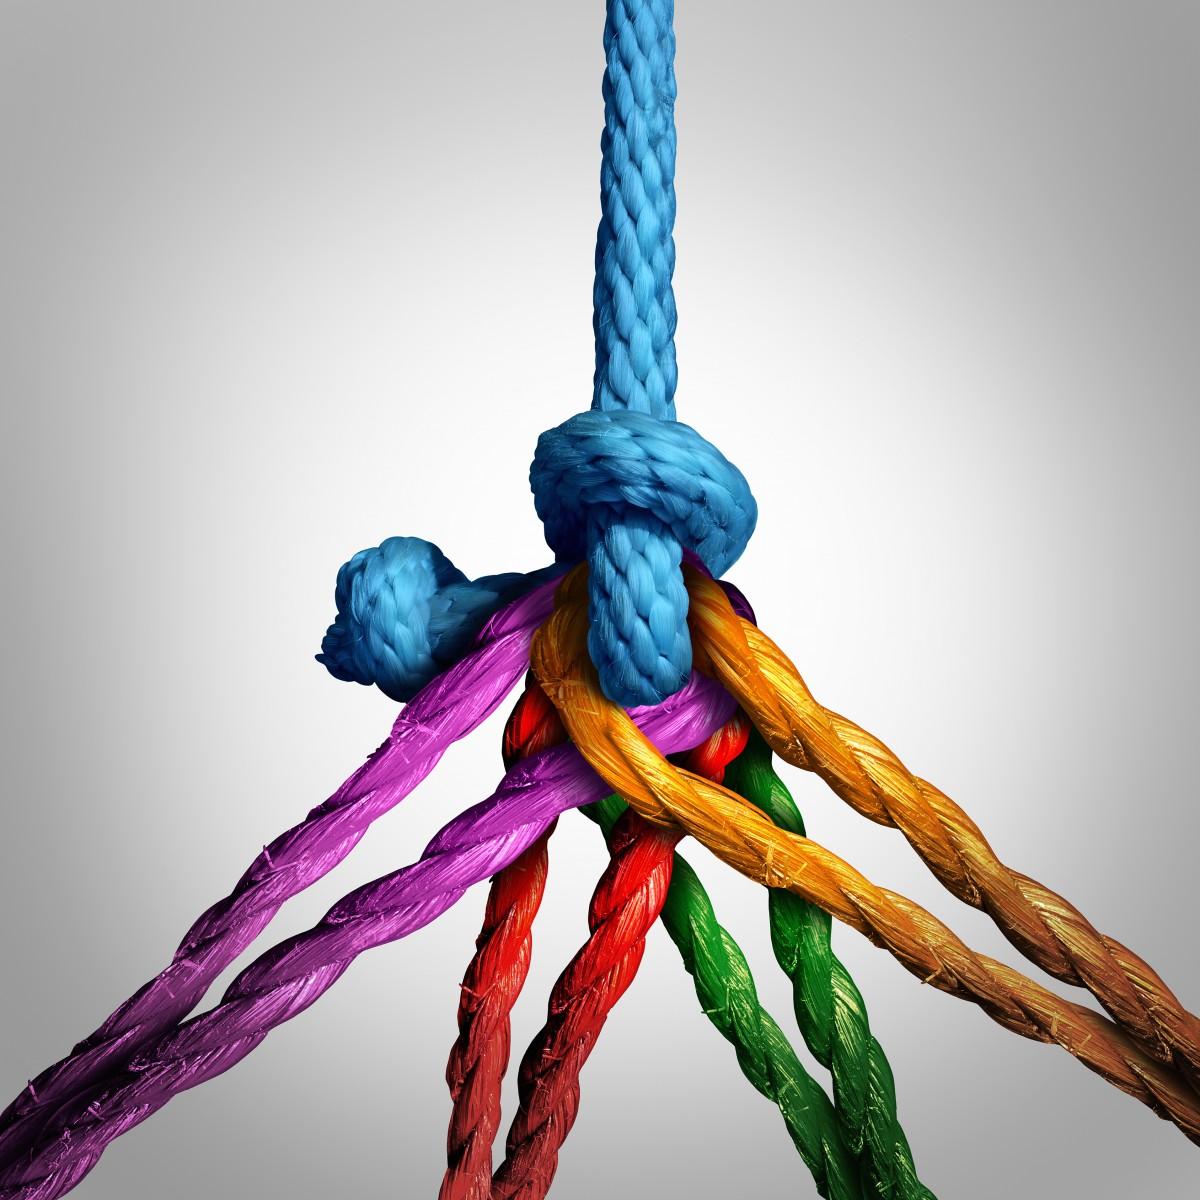 many different ropes